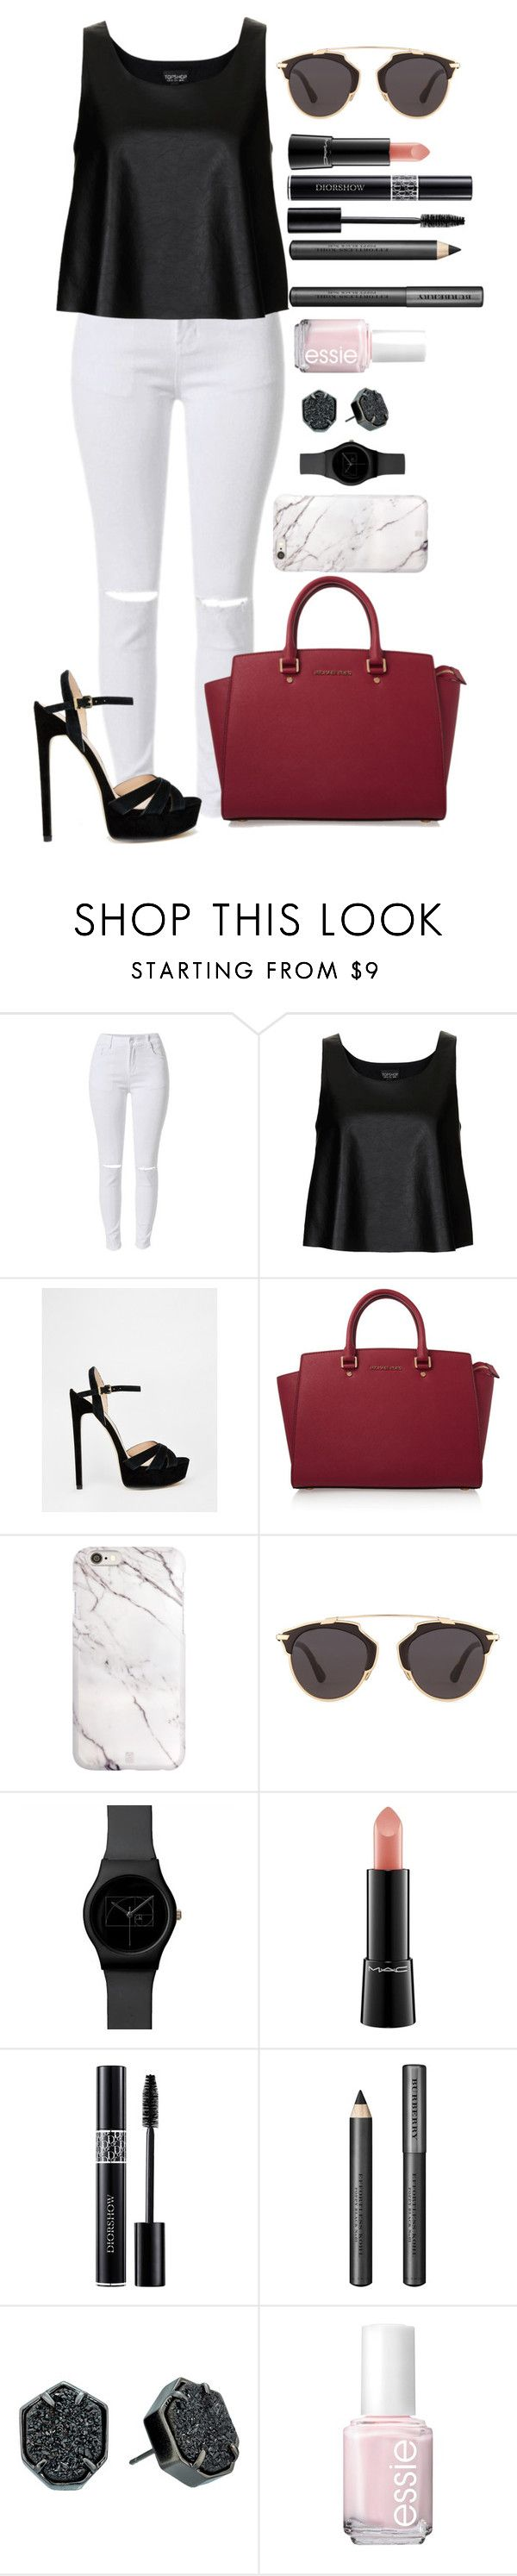 """Untitled #1336"" by fabianarveloc on Polyvore featuring Topshop, River Island, MICHAEL Michael Kors, Christian Dior, MAC Cosmetics, Burberry, Kendra Scott and Essie"